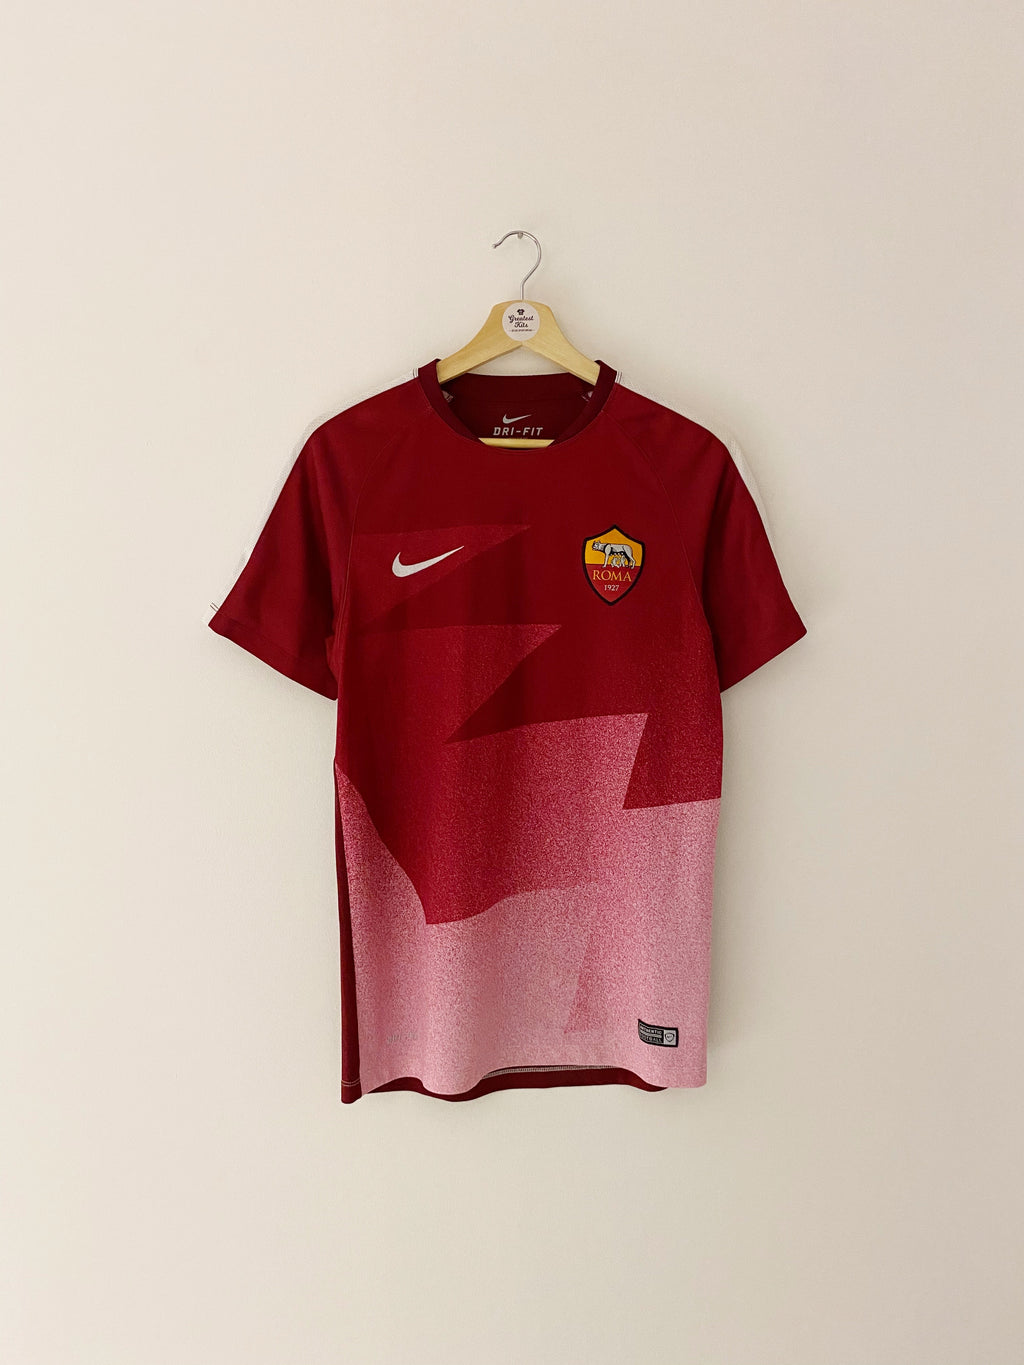 2015/16 Roma Pre-Match Training Shirt (S) 10/10